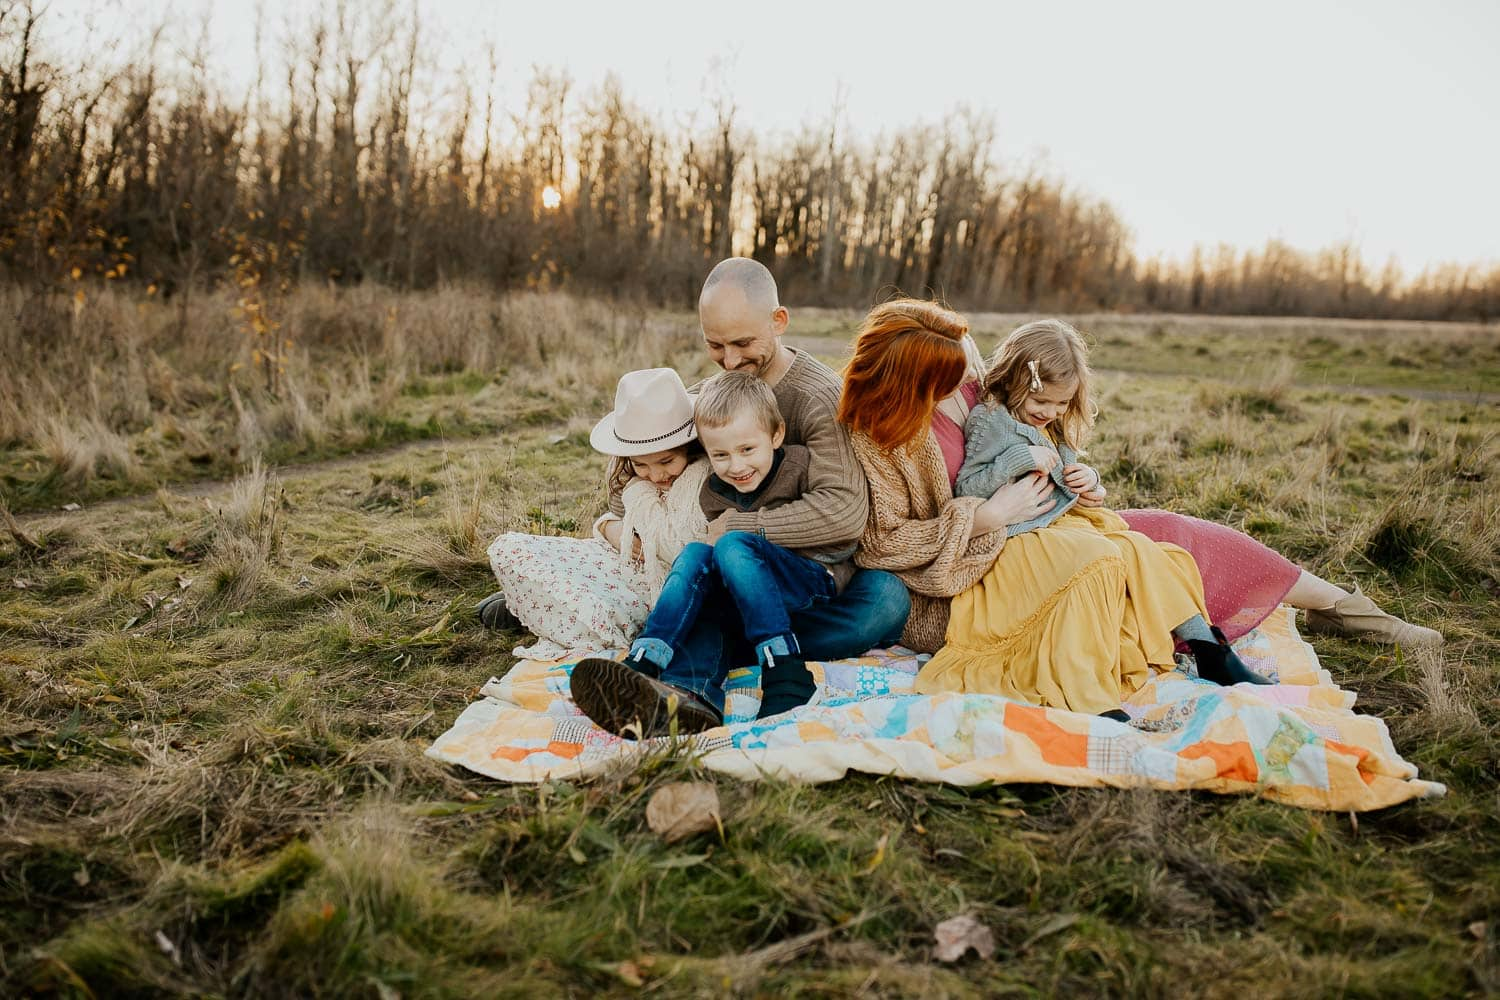 Family sitting on blanket together tickling each other - Portland photographer